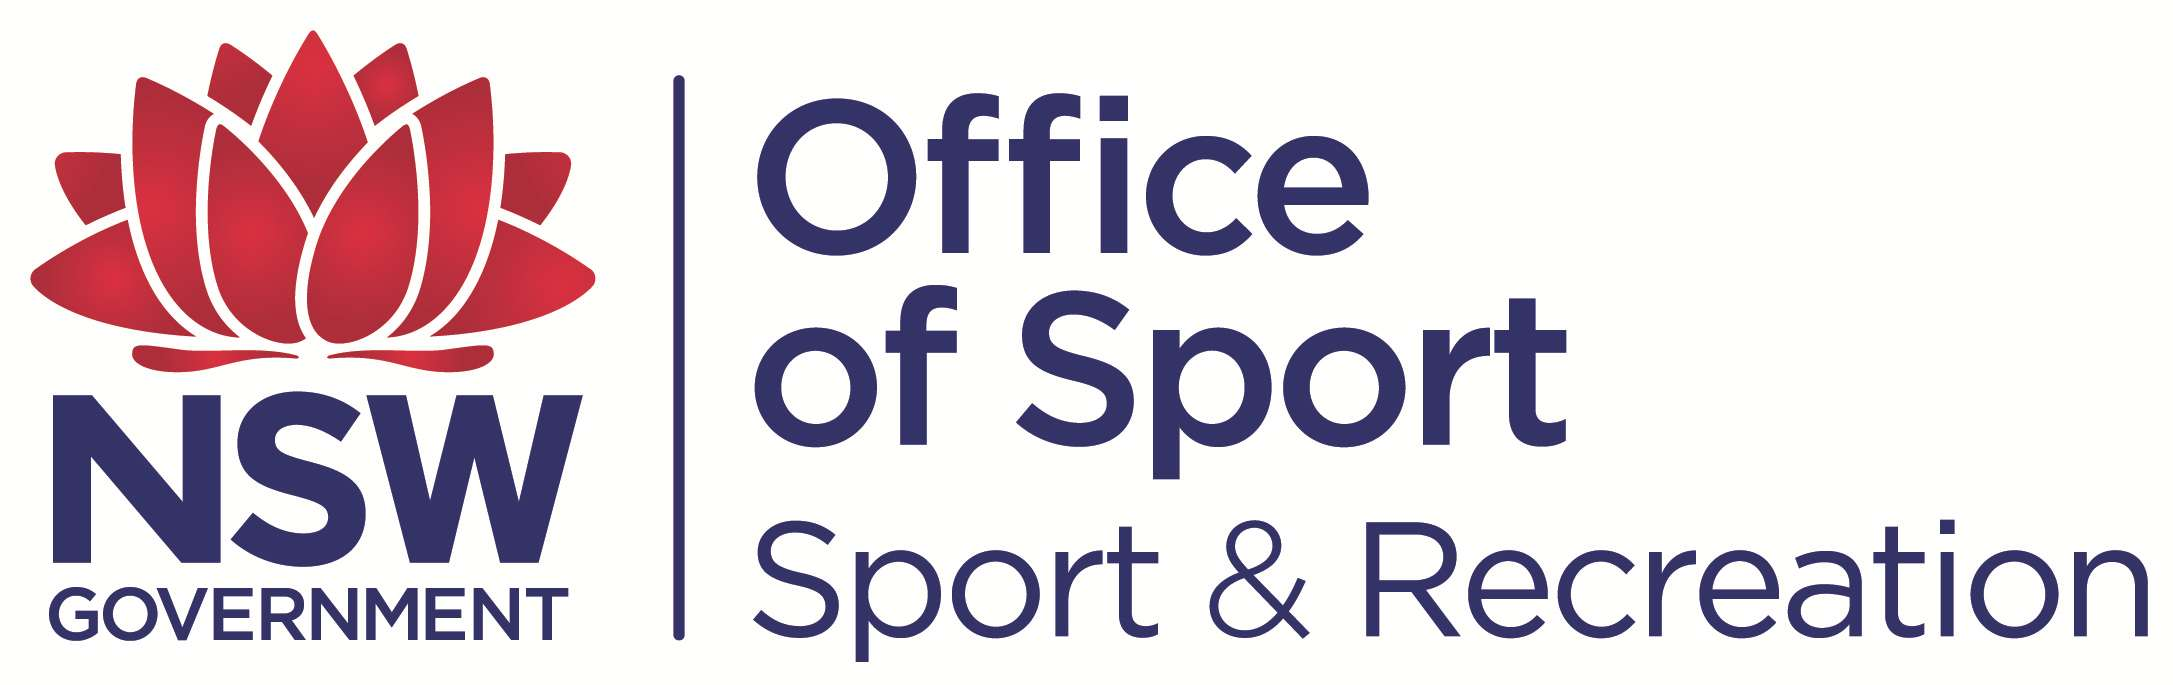 Office of Sport logo